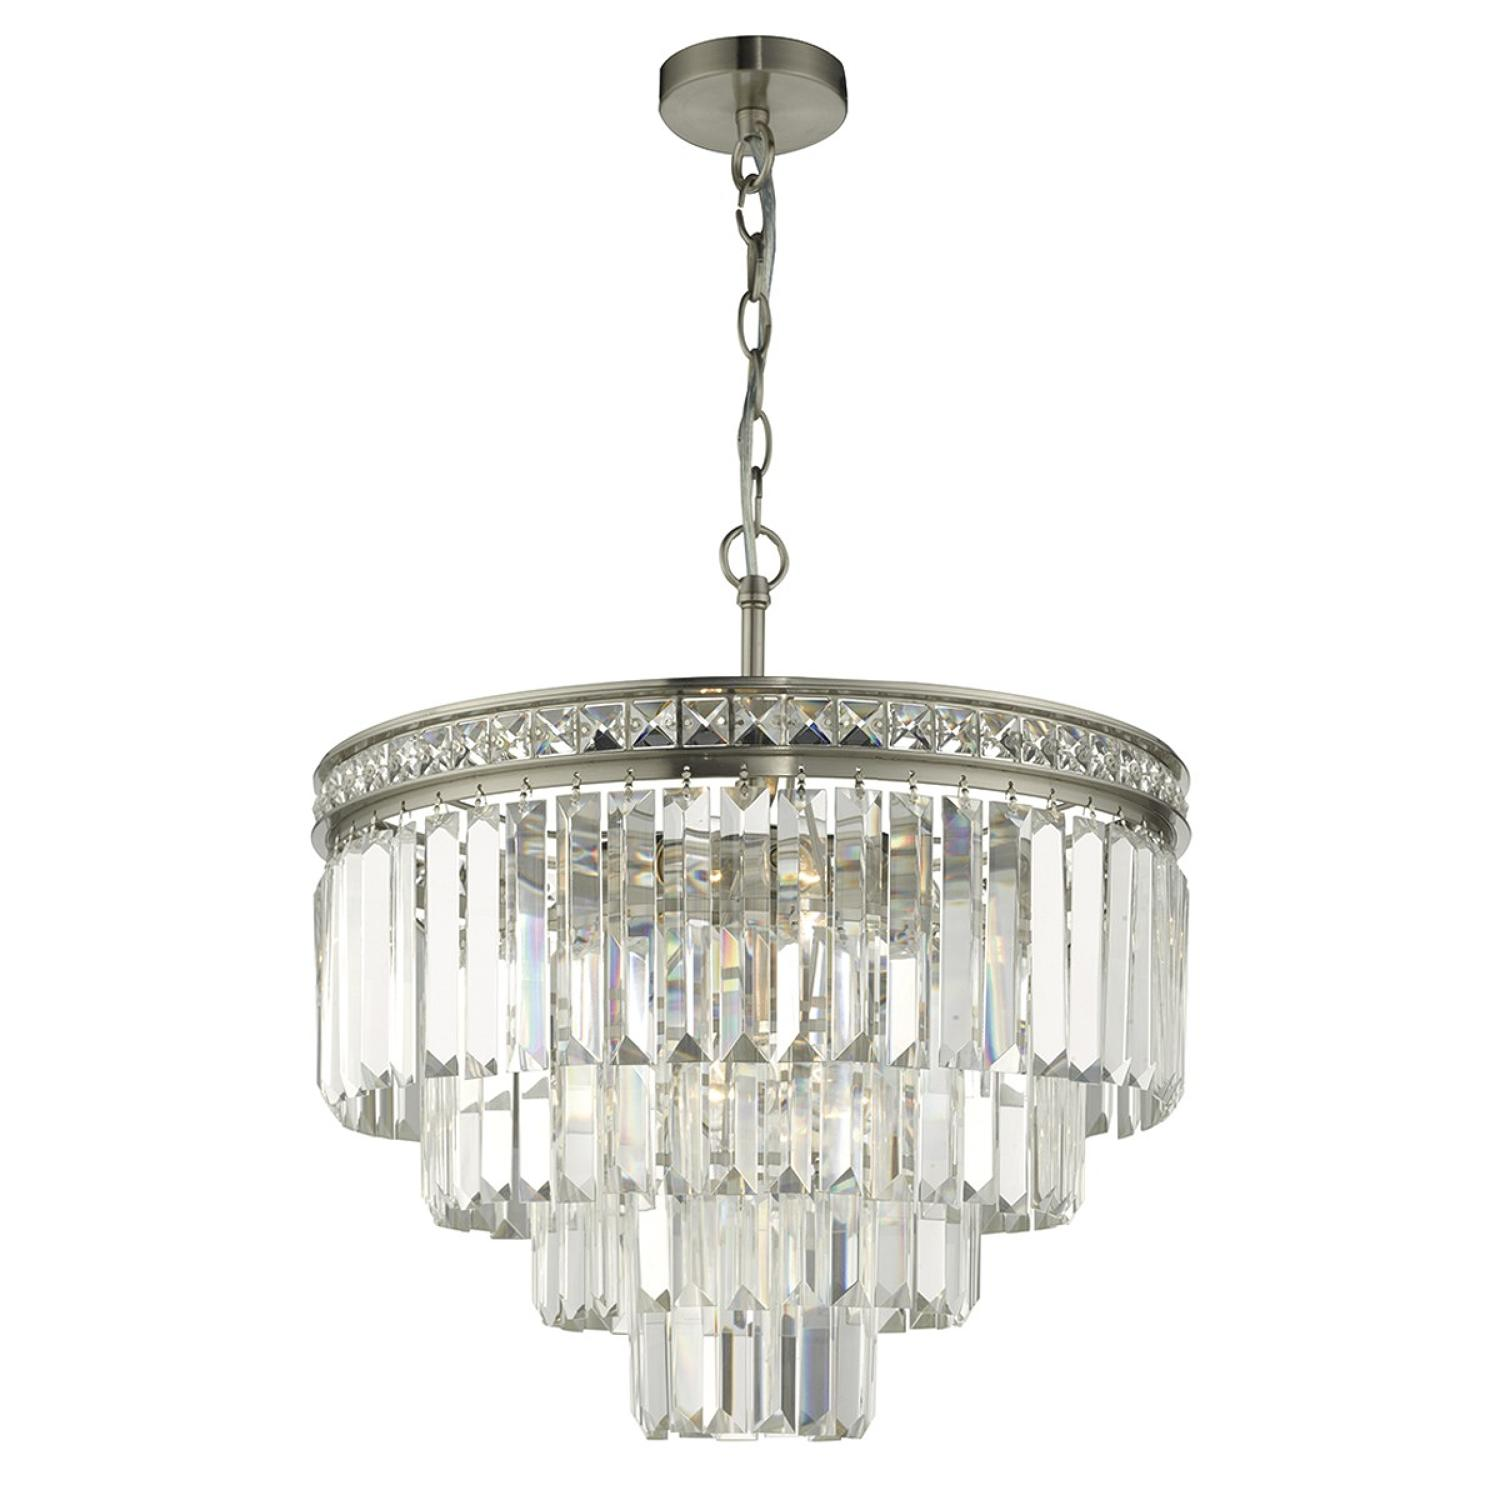 4 light pendant with brushed nickel frame & crystal tier drop skirt